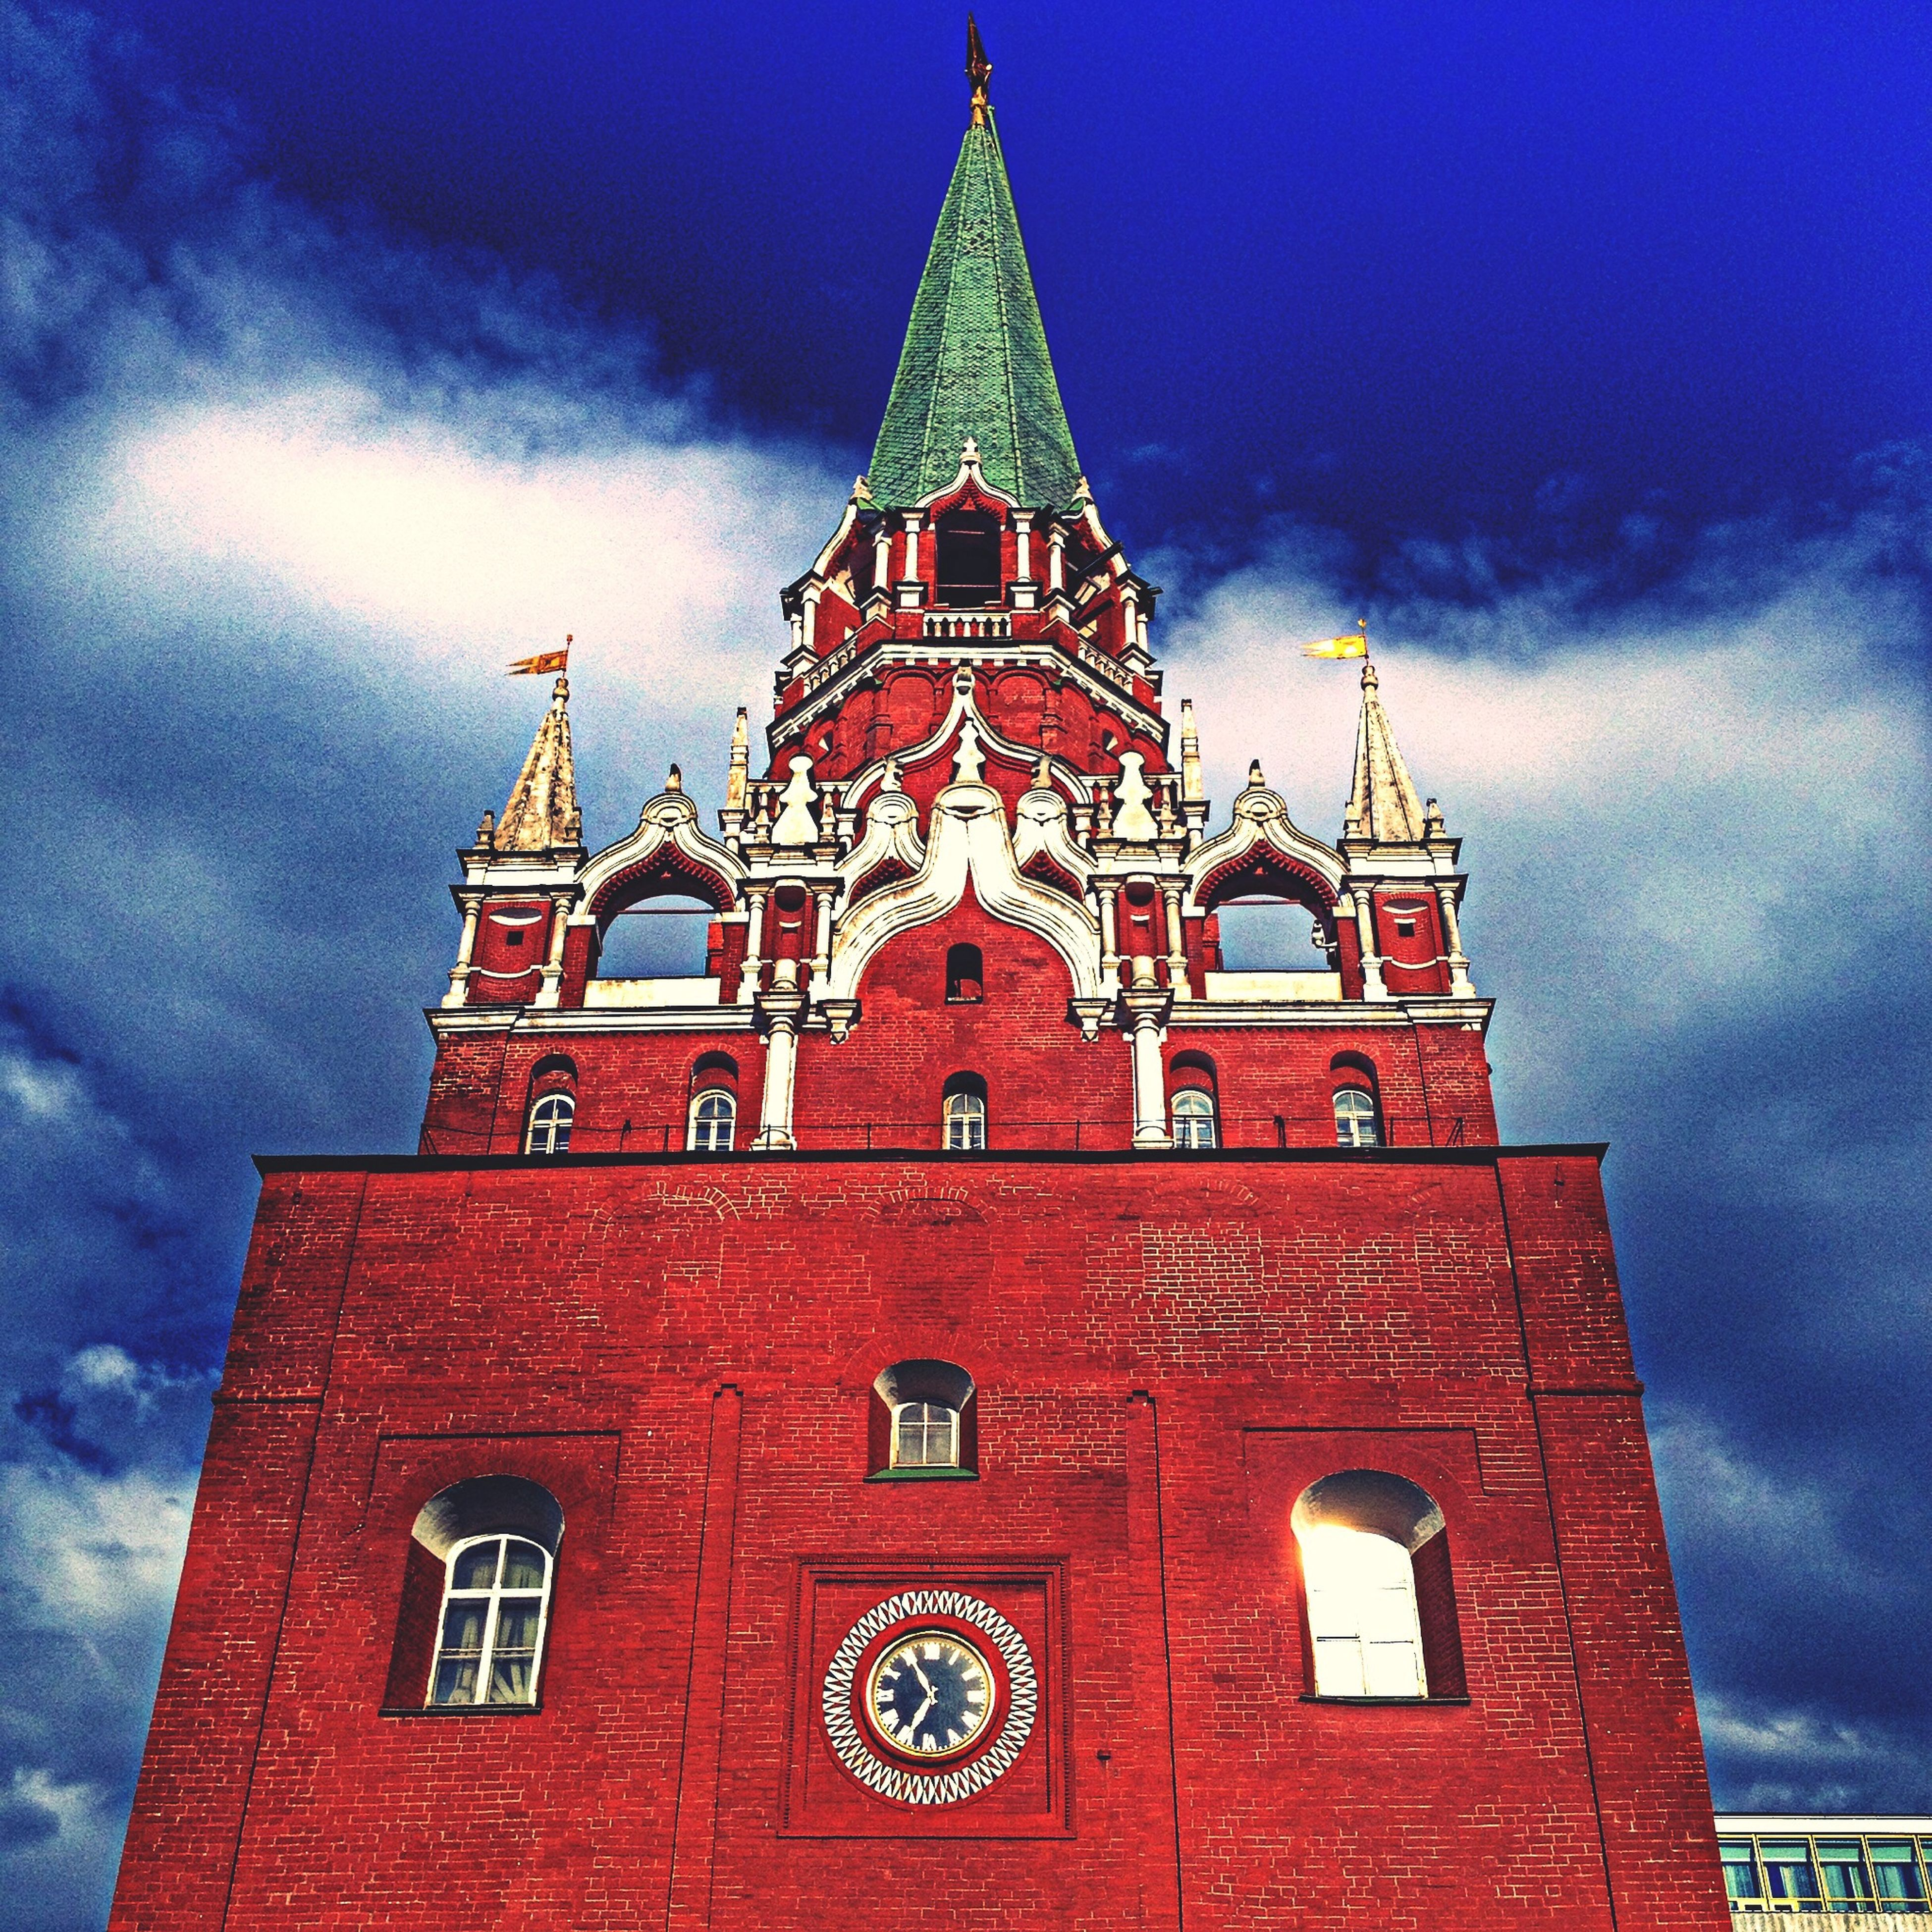 architecture, building exterior, low angle view, built structure, sky, red, religion, cloud - sky, church, place of worship, tower, spirituality, cloudy, clock tower, cloud, day, outdoors, no people